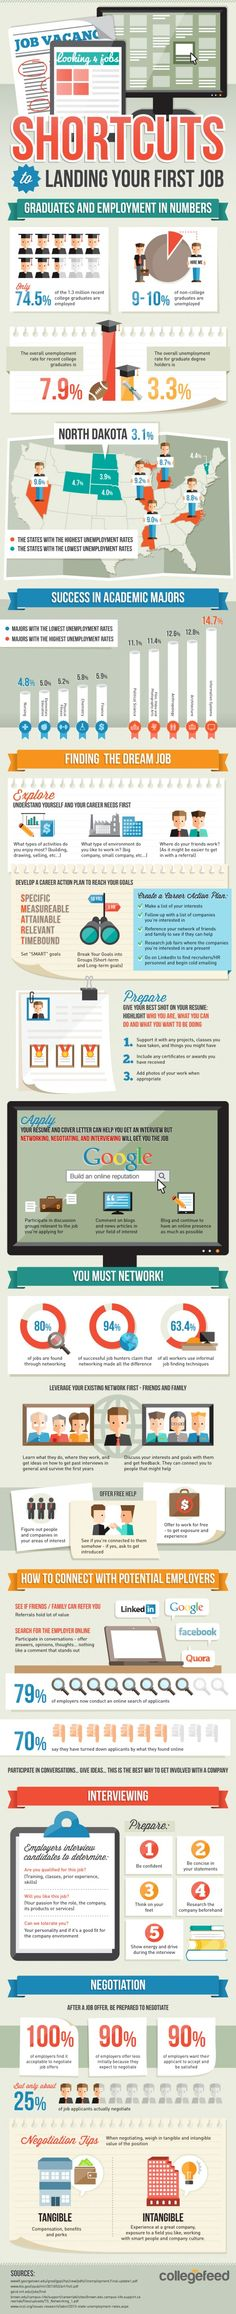 Job Search Shortcuts Sure to Help Get that First Gig #Infographic